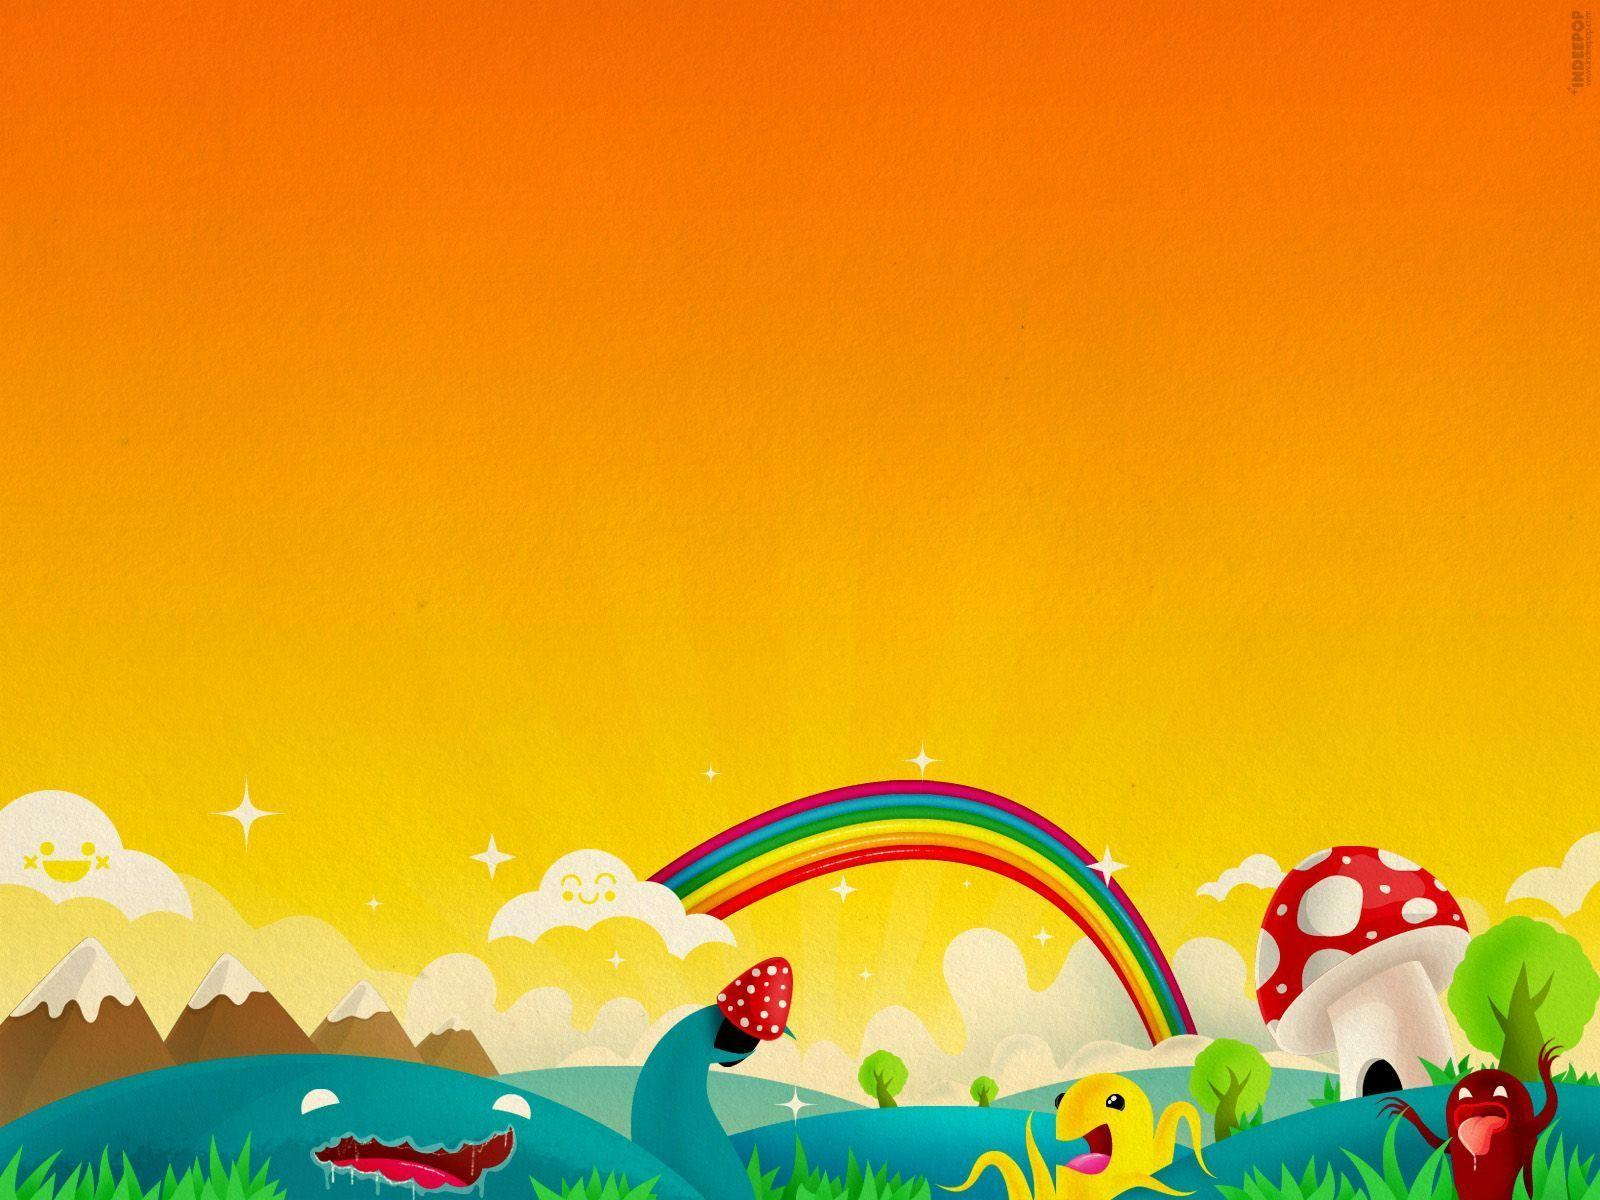 Cartoon Backgrounds 1 328069 High Definition Wallpapers